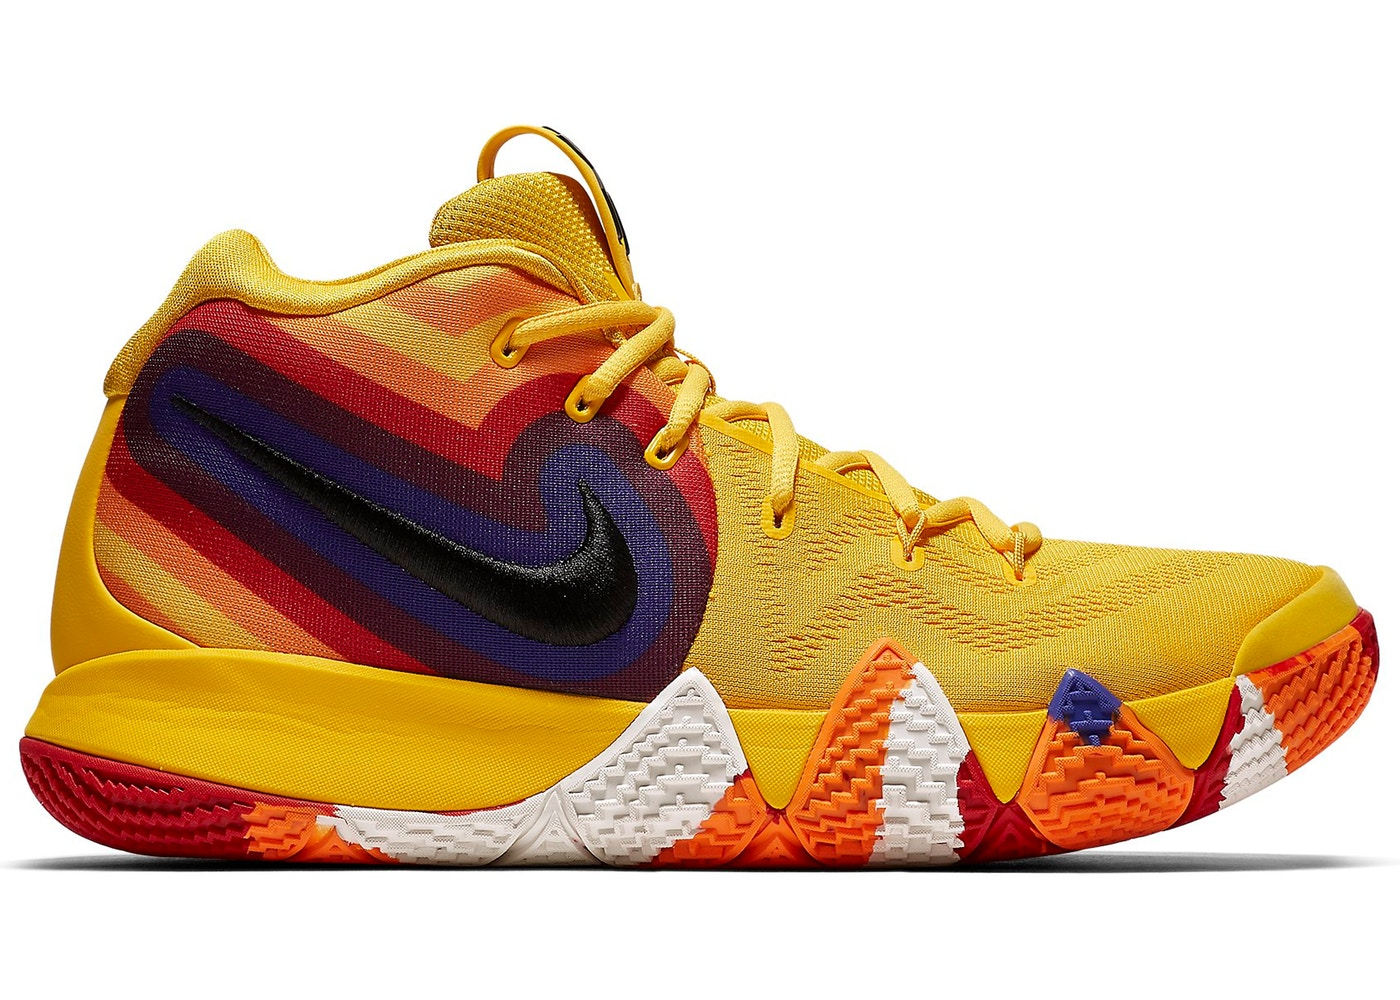 reputable site d57eb ebf37 Buy Nike Basketball Kyrie Shoes & Deadstock Sneakers